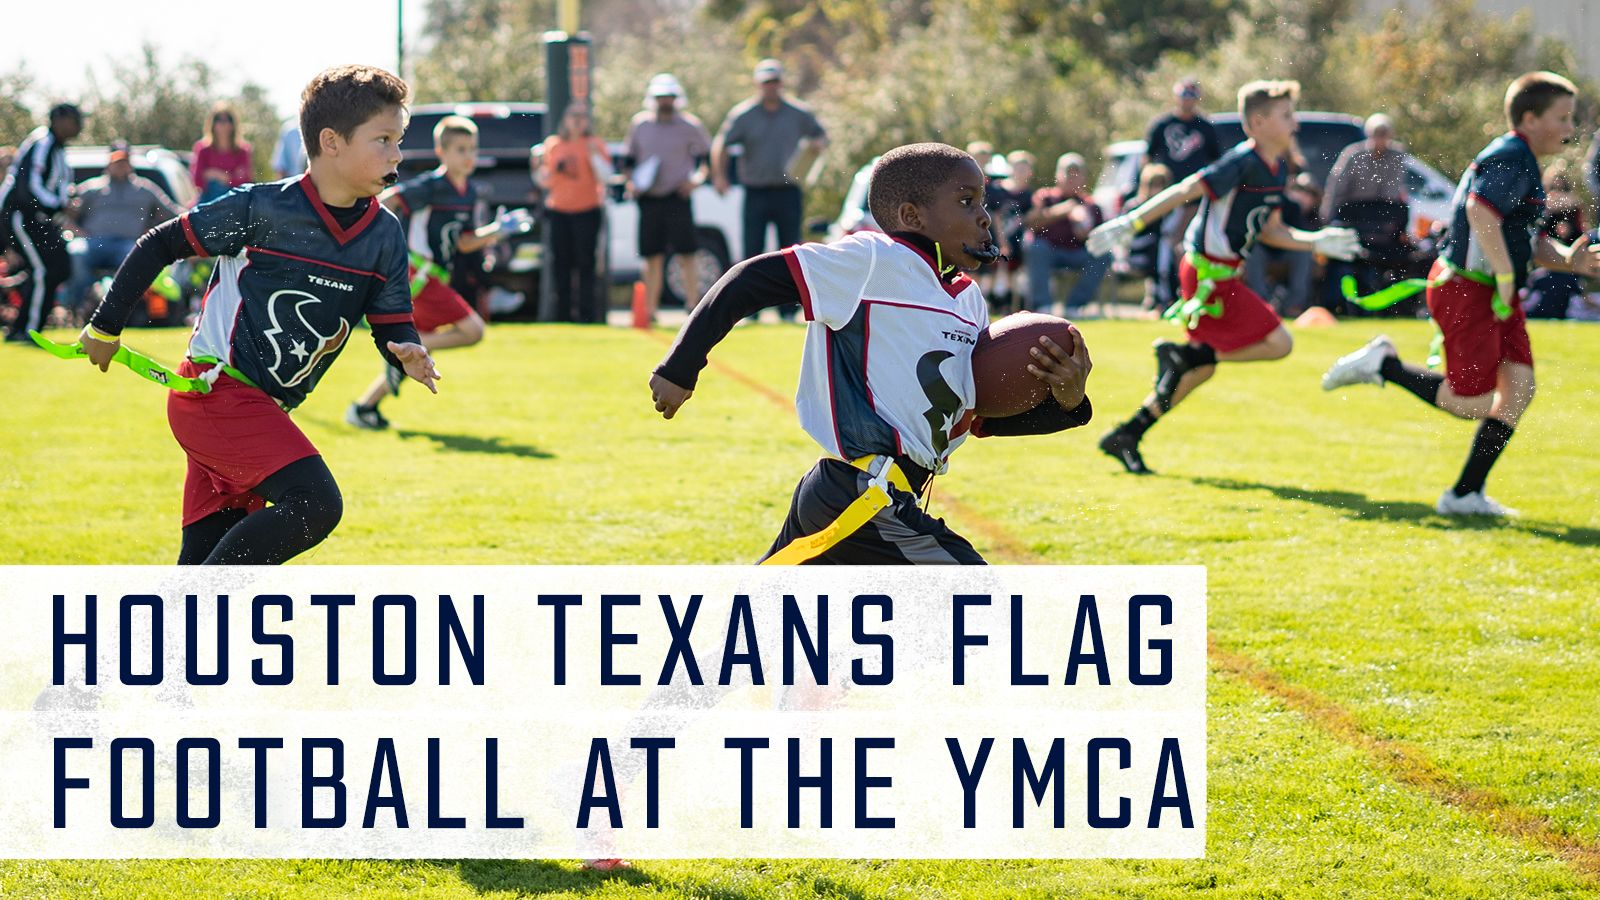 Houston Texans Flag Football at the YMCA